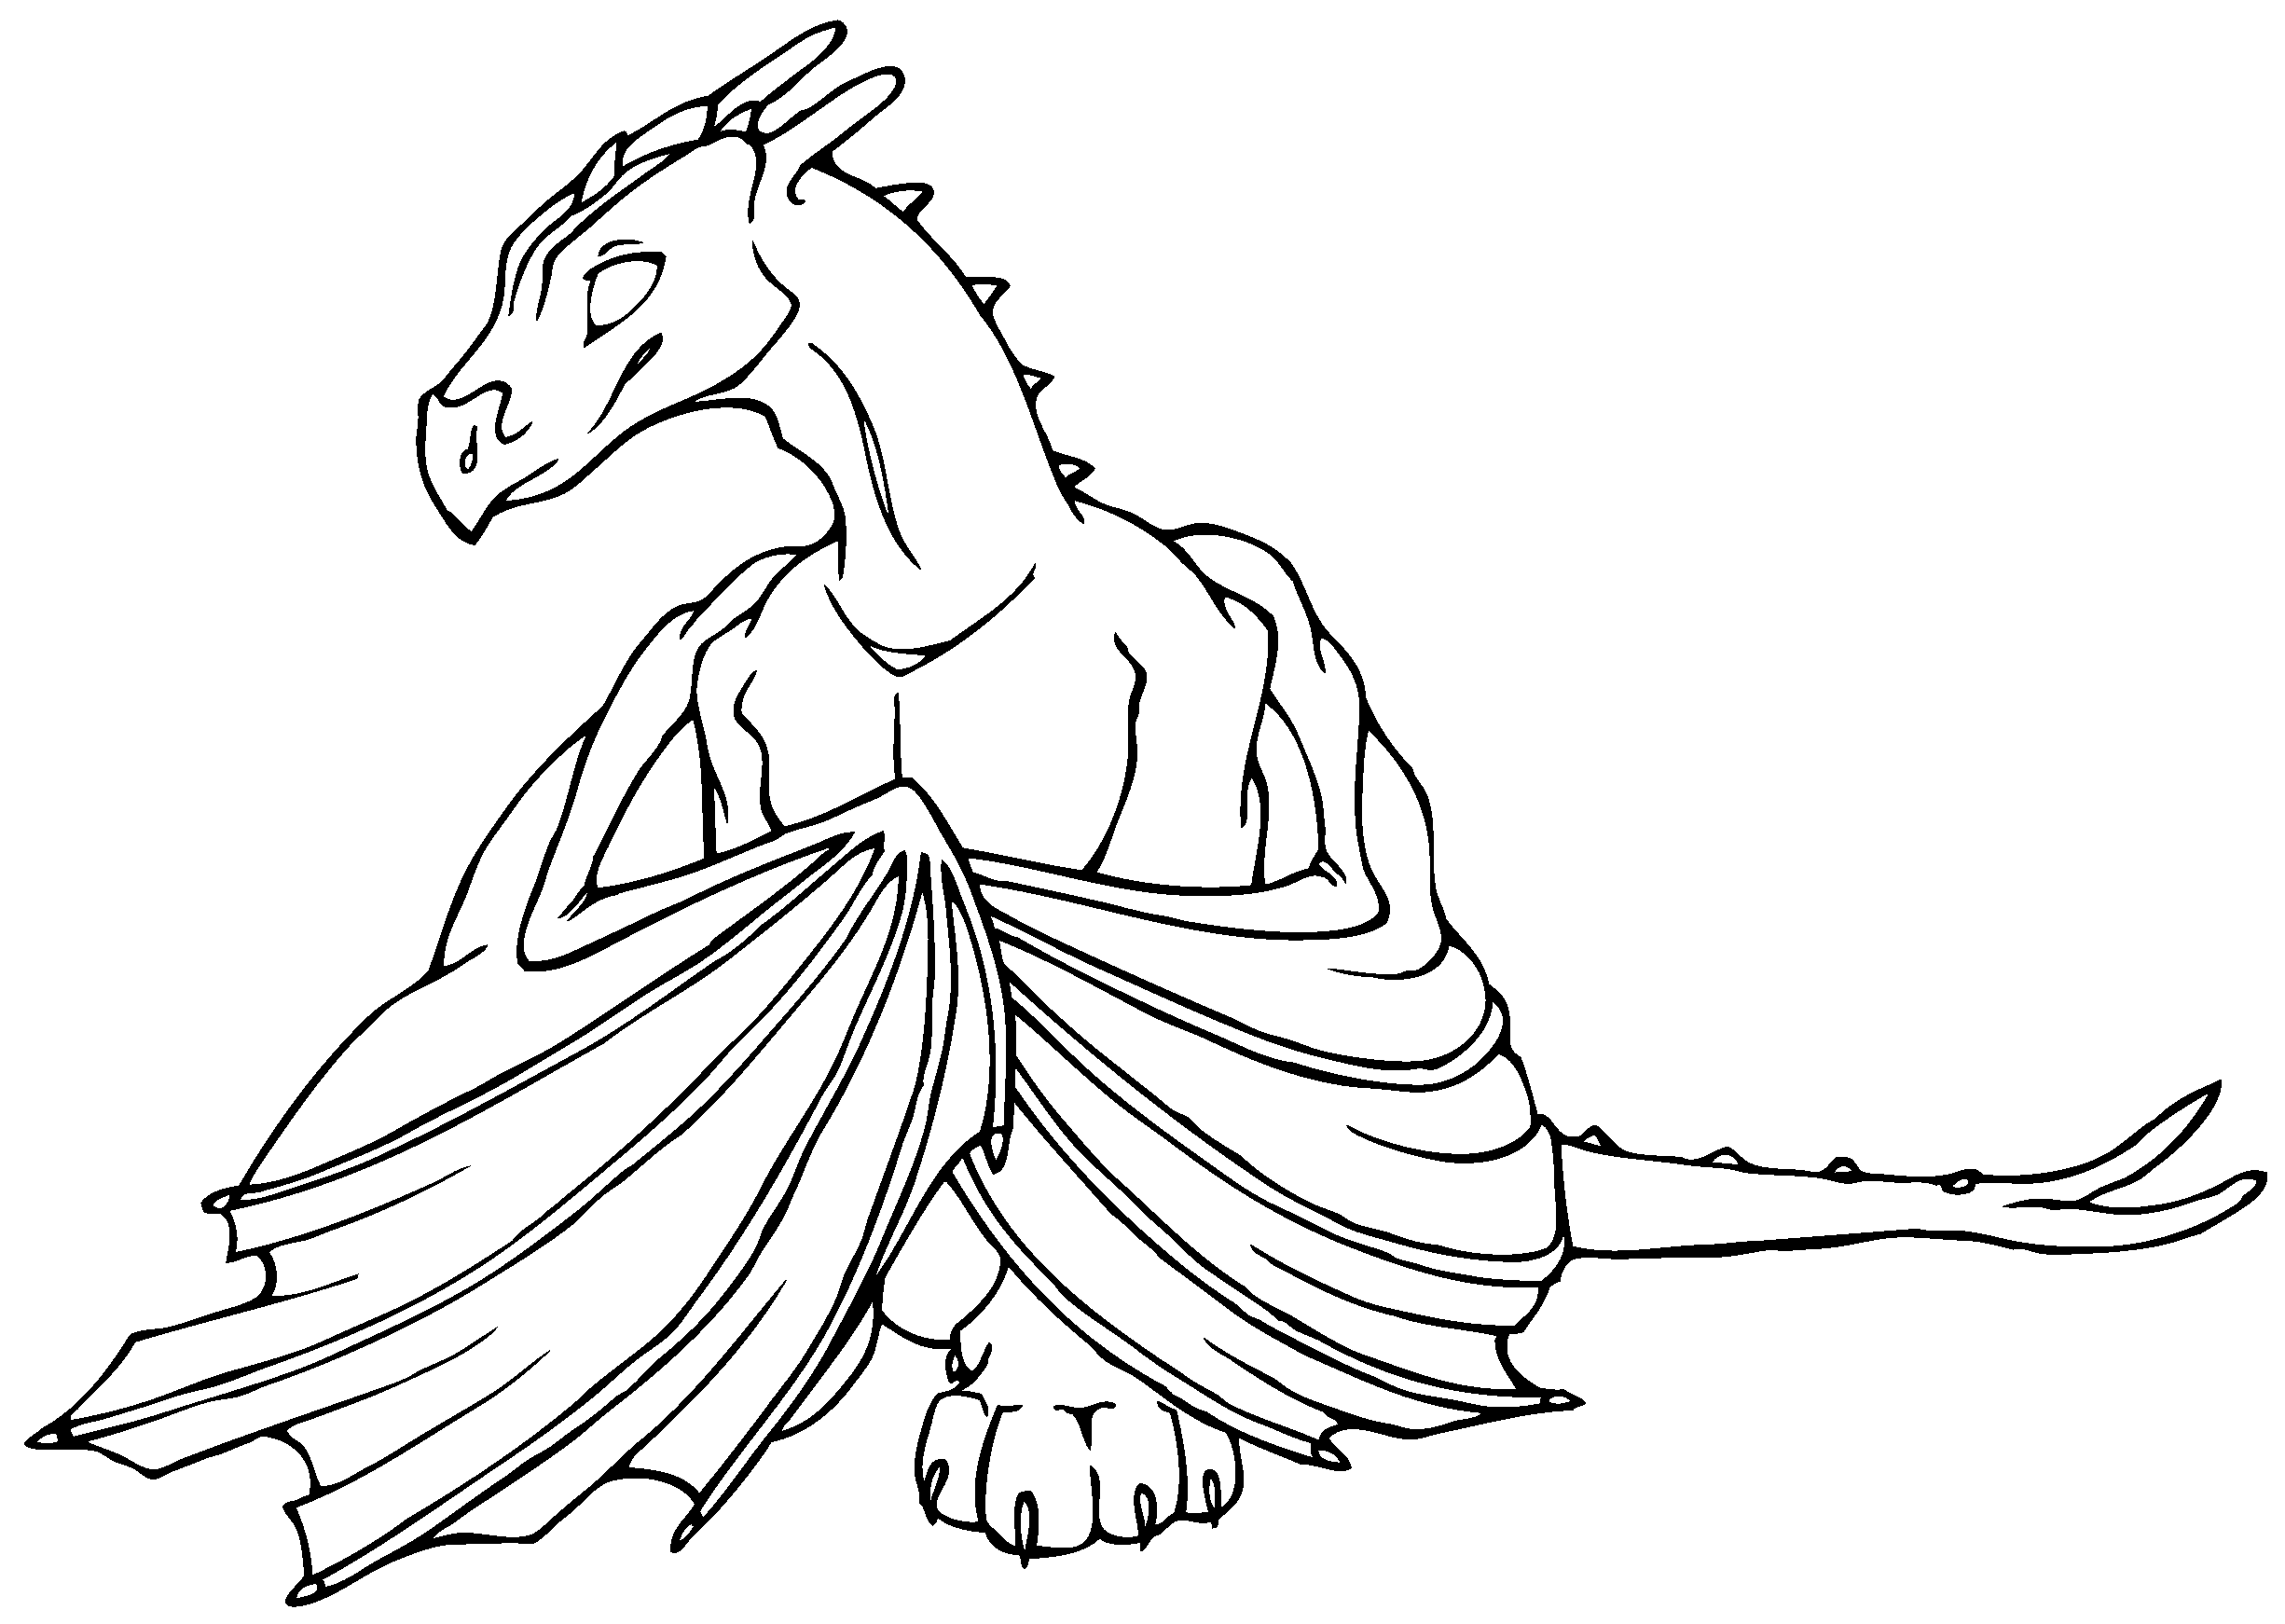 dragon coloring pages coloring pages - Printable Dragon Coloring Pages